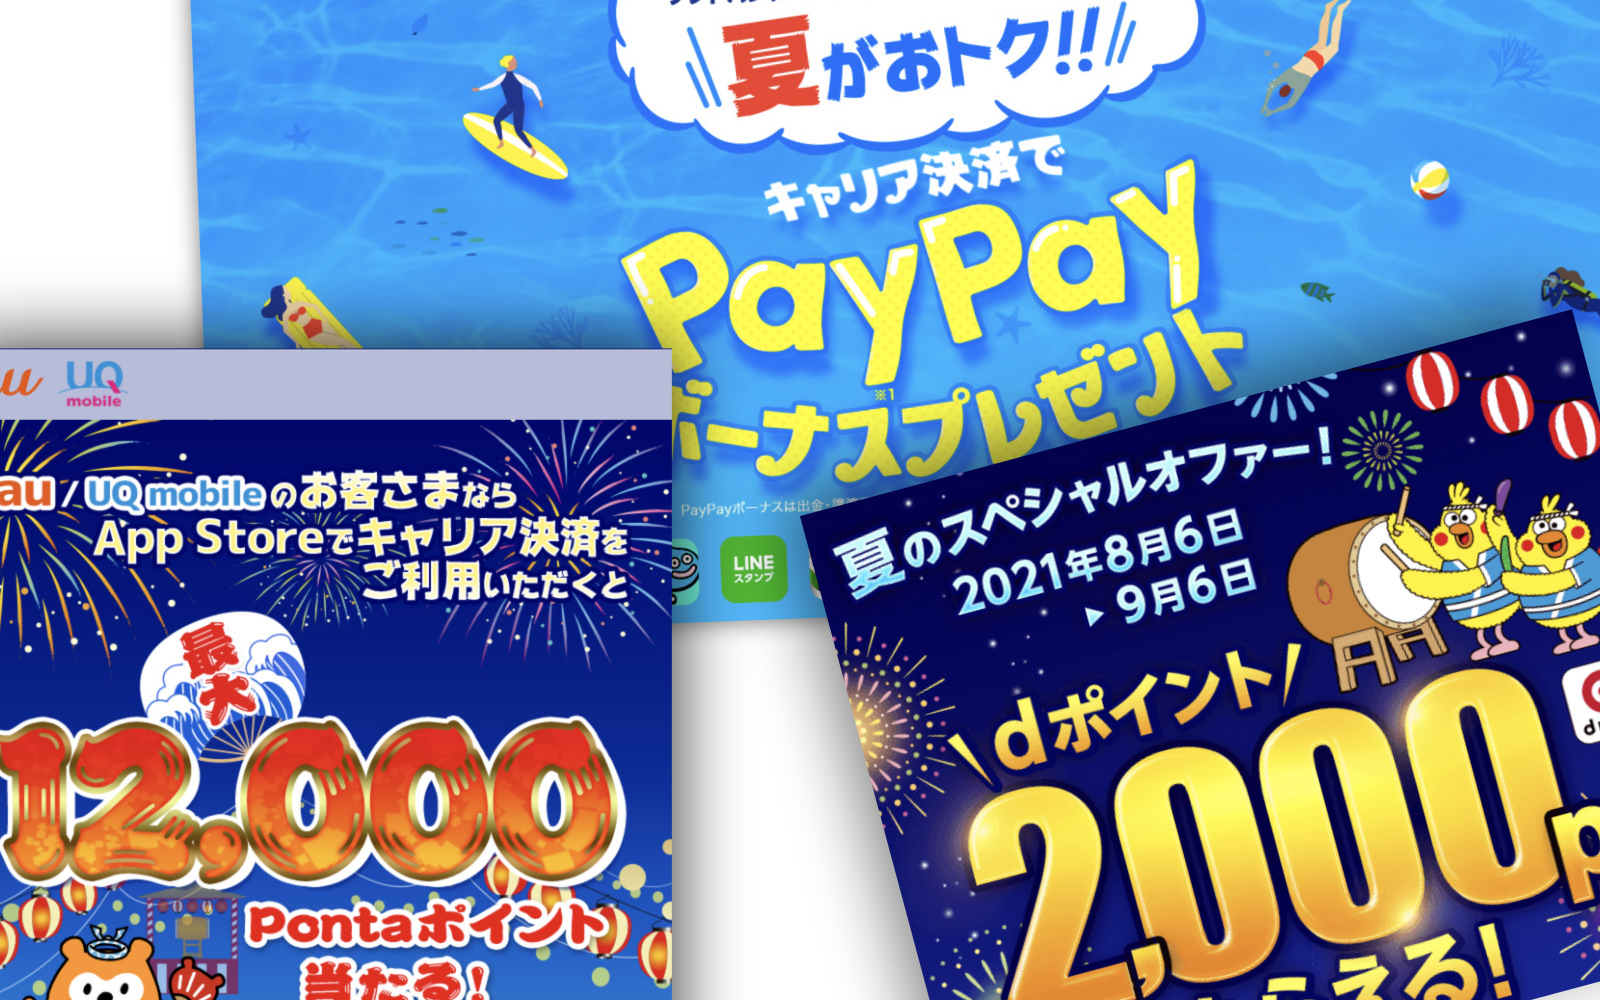 Carrier Payment pointback